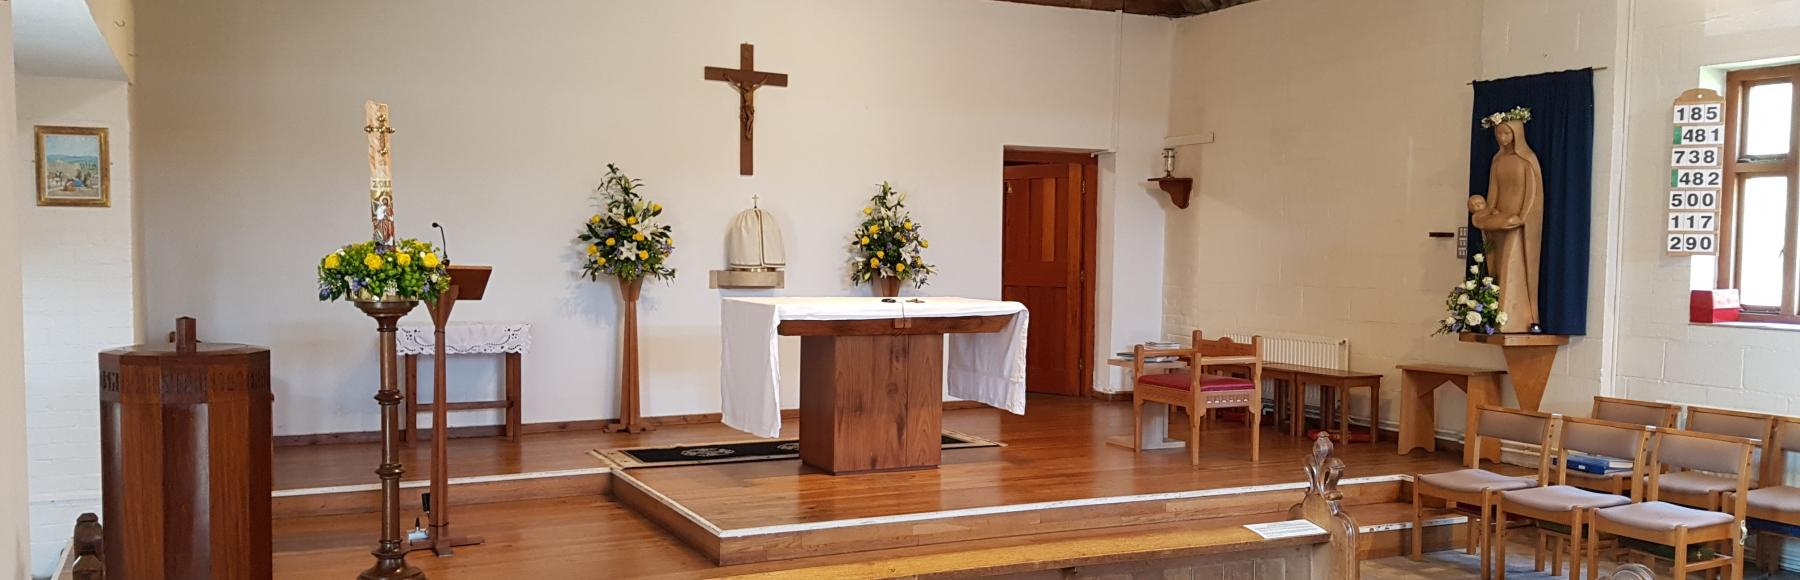 St Francis de Sales Church Altar